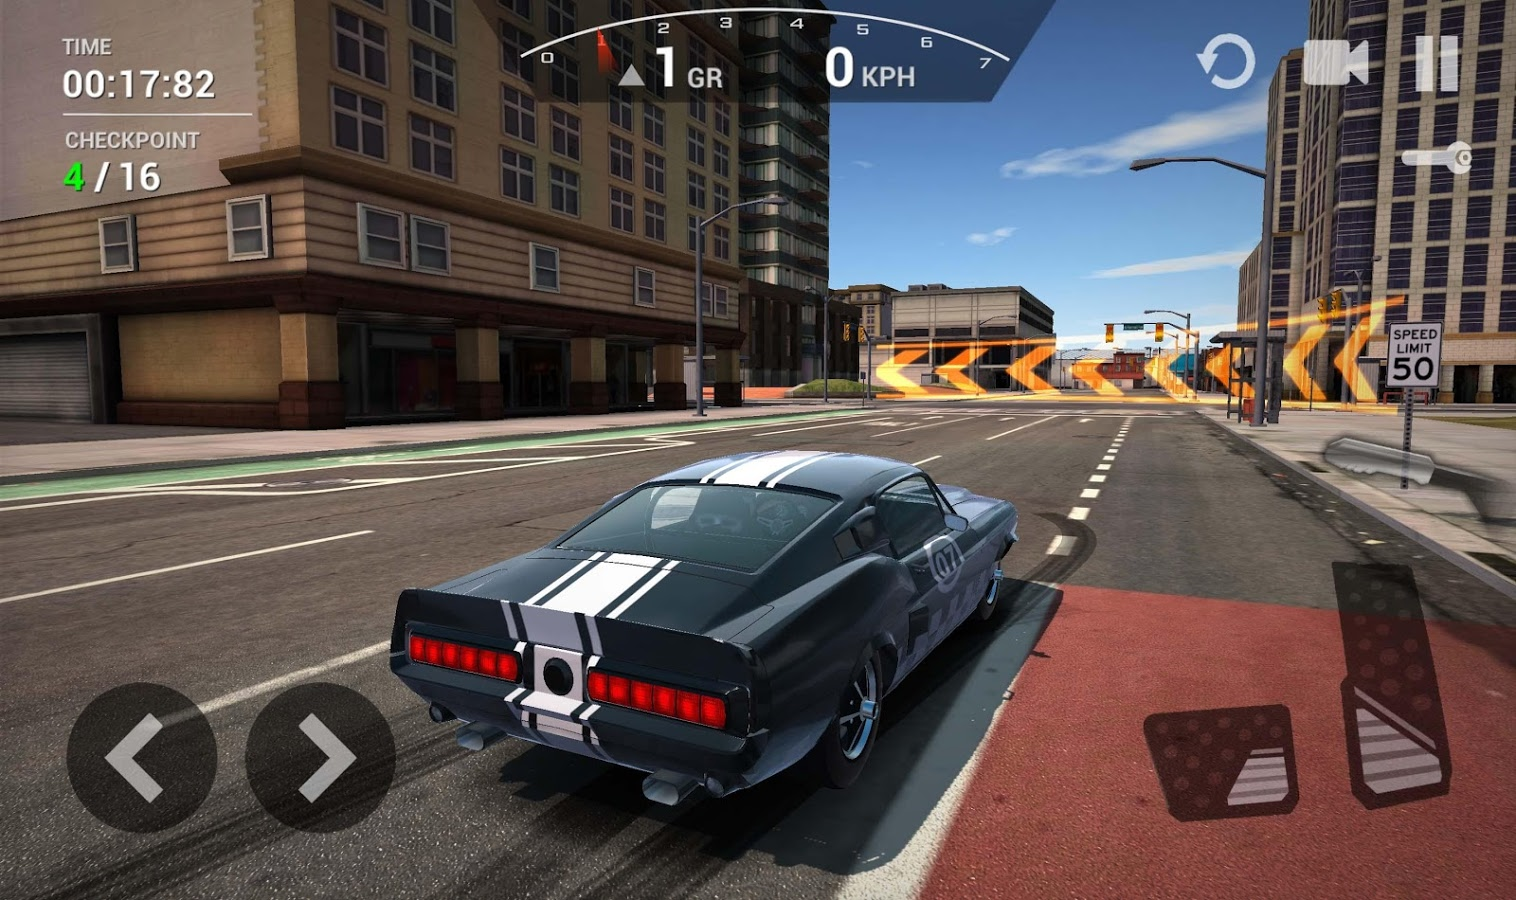 скачать взлом ultimate car driving simulator